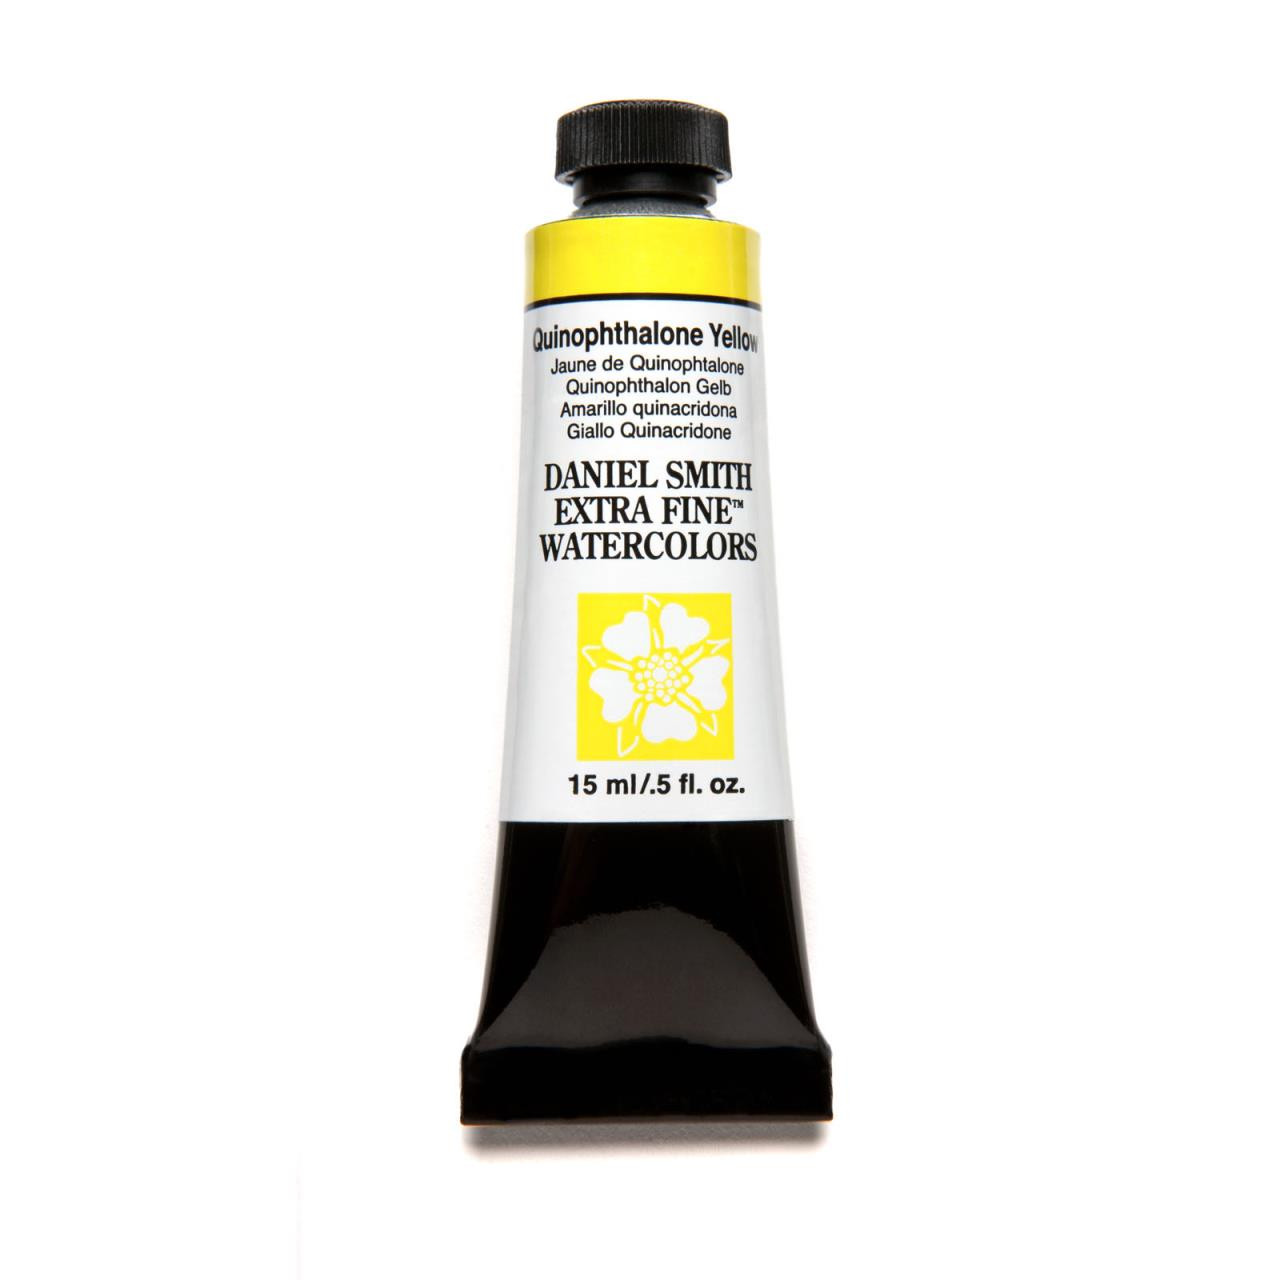 Quinophthalone Yellow, DANIEL SMITH Extra Fine Watercolors 15ml Tubes -